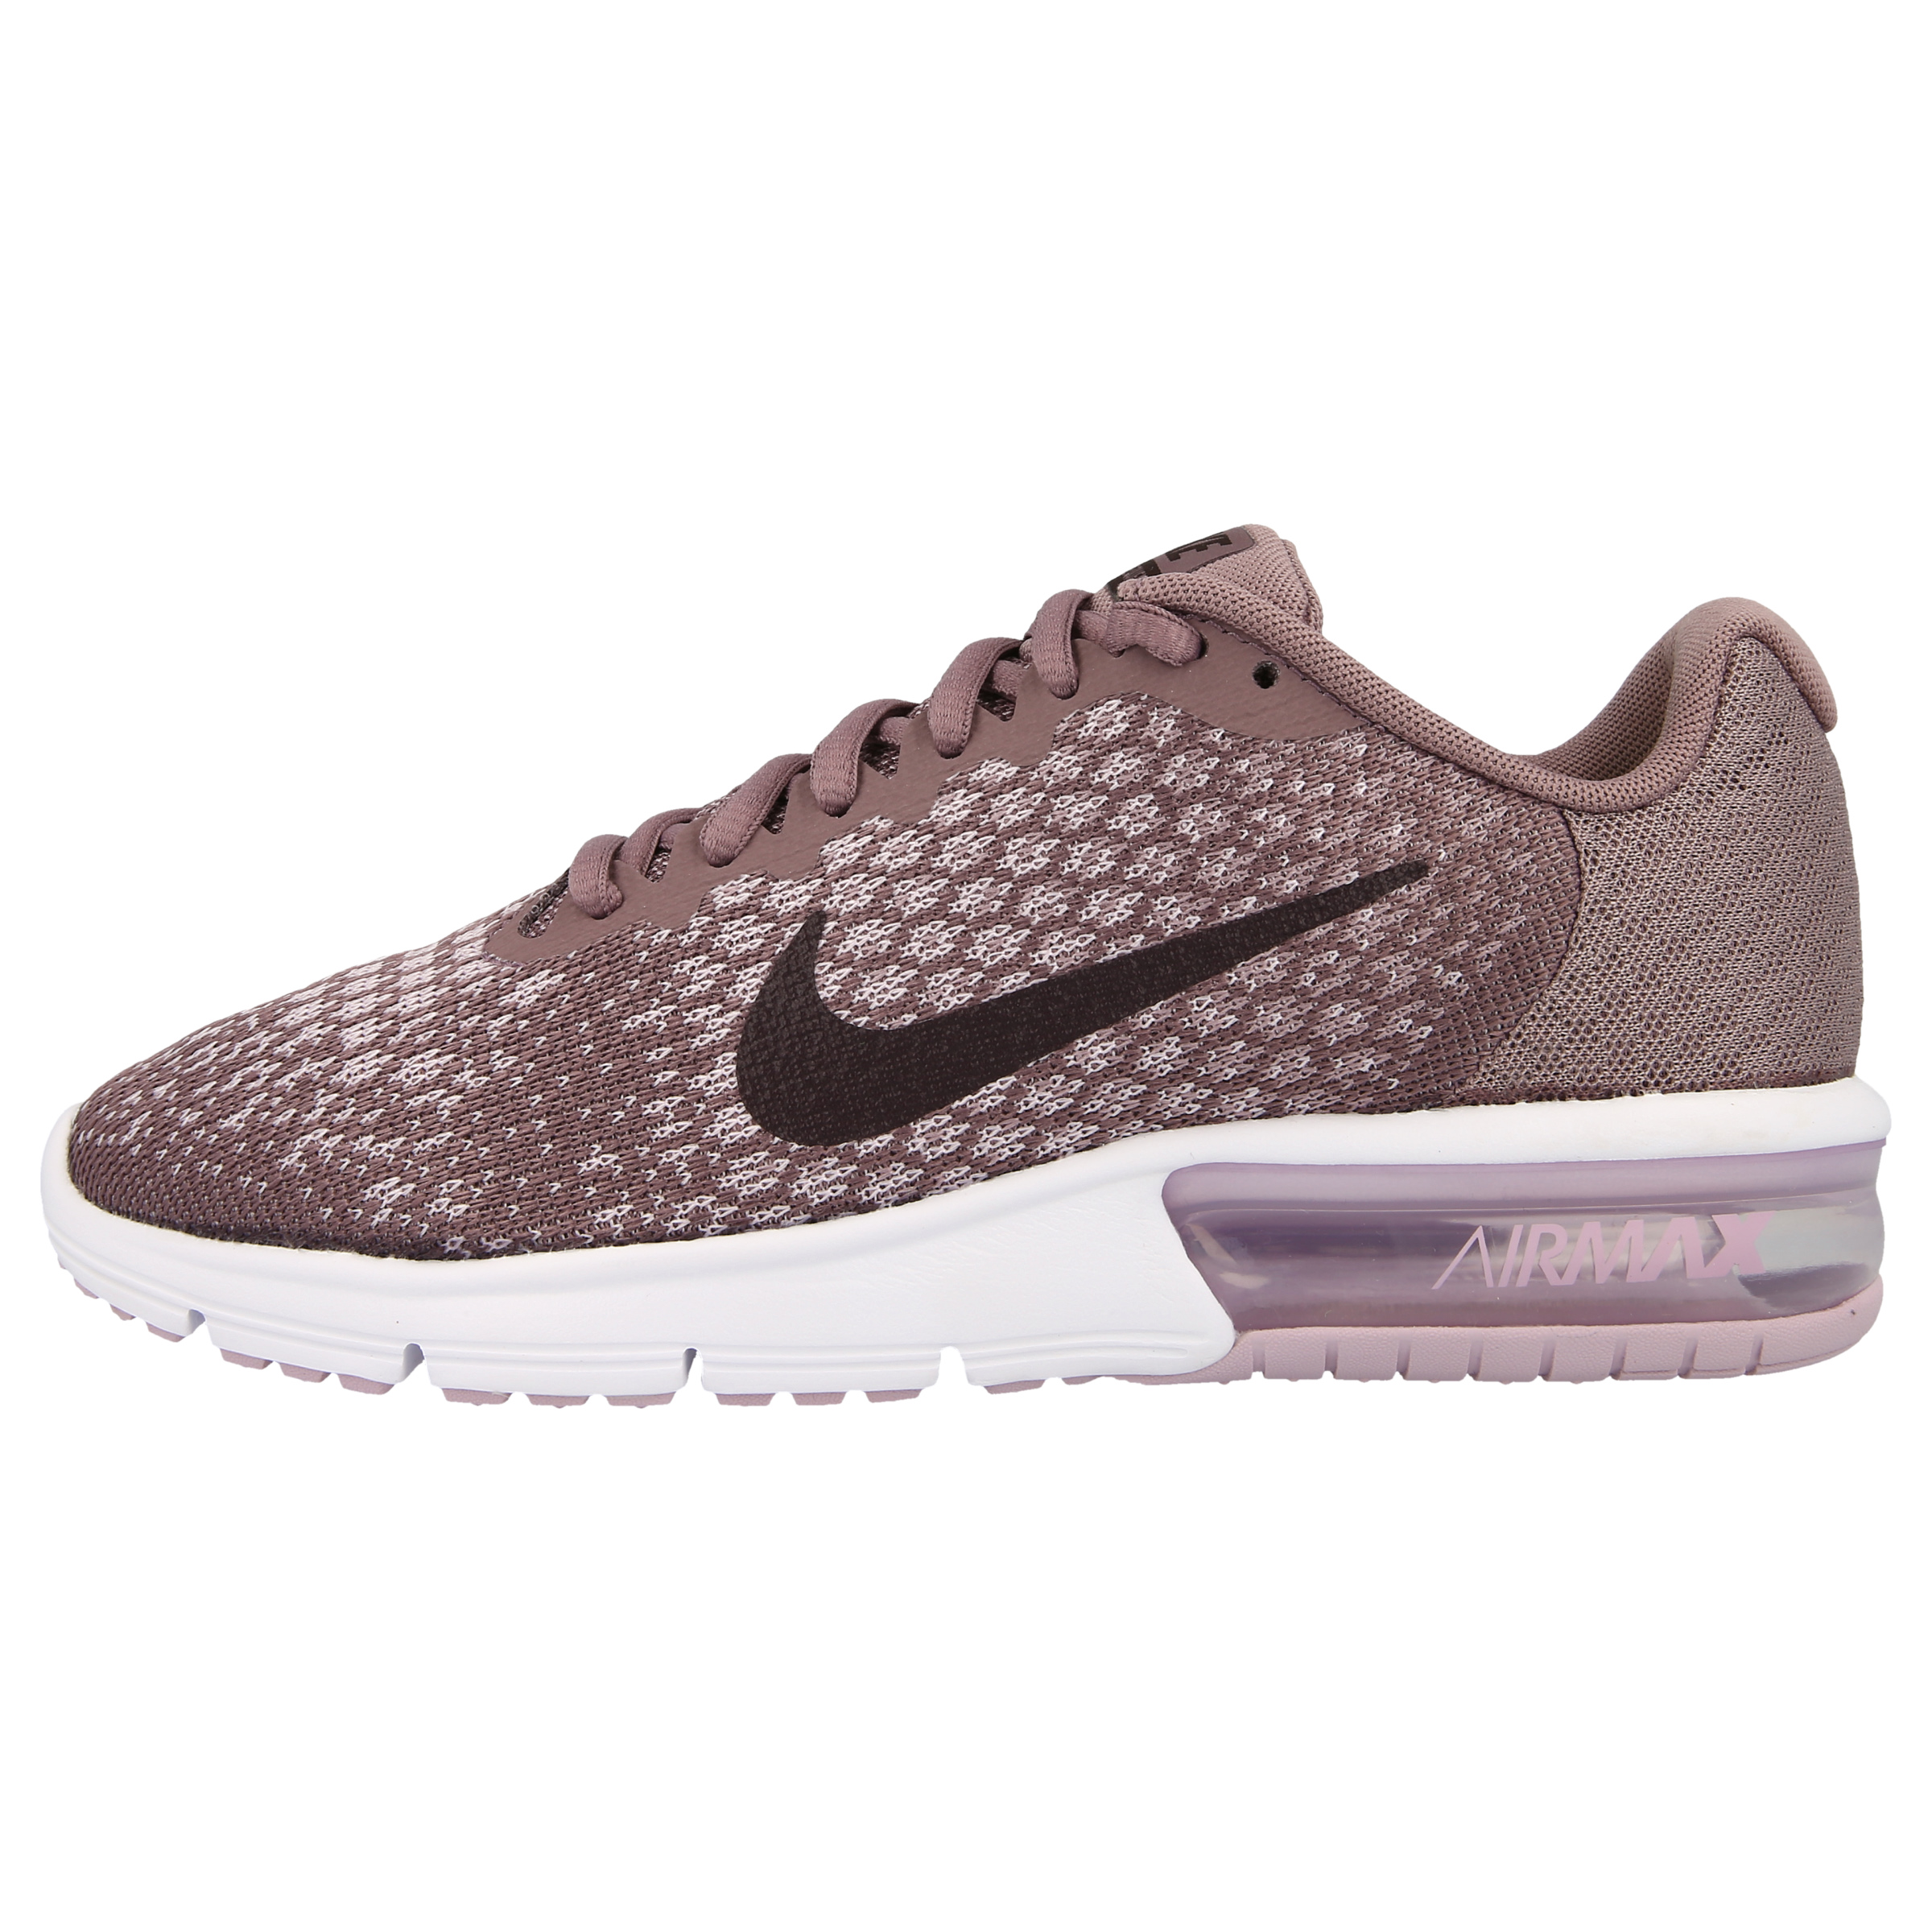 7ffb18e58 ... sweden nike patike wmns nike air max sequent 2 44011 62400